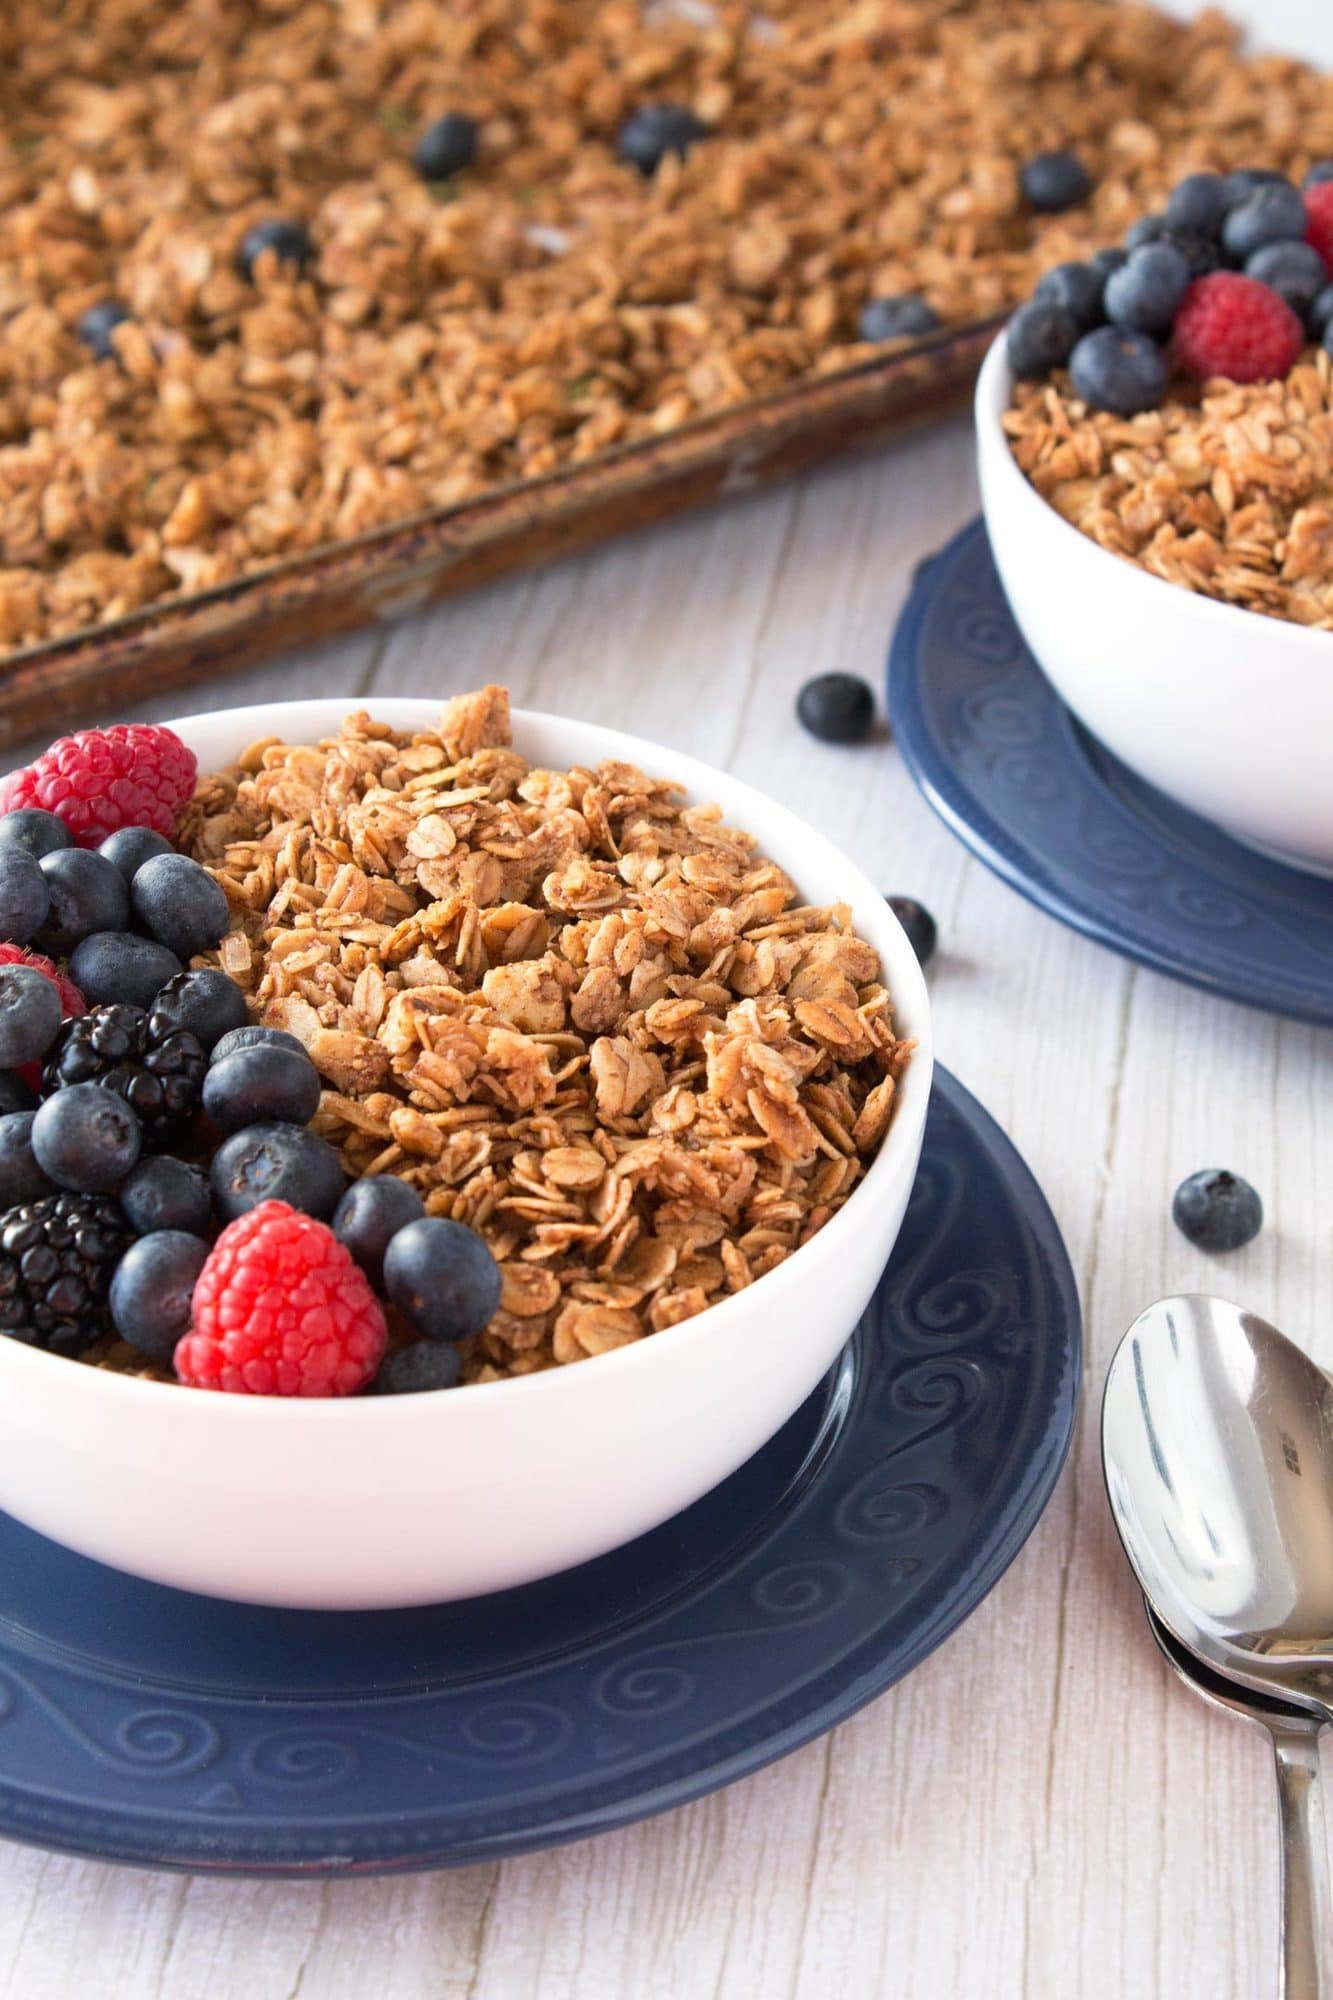 Cereal bowl filled with crunchy granola clusters and fresh berries.